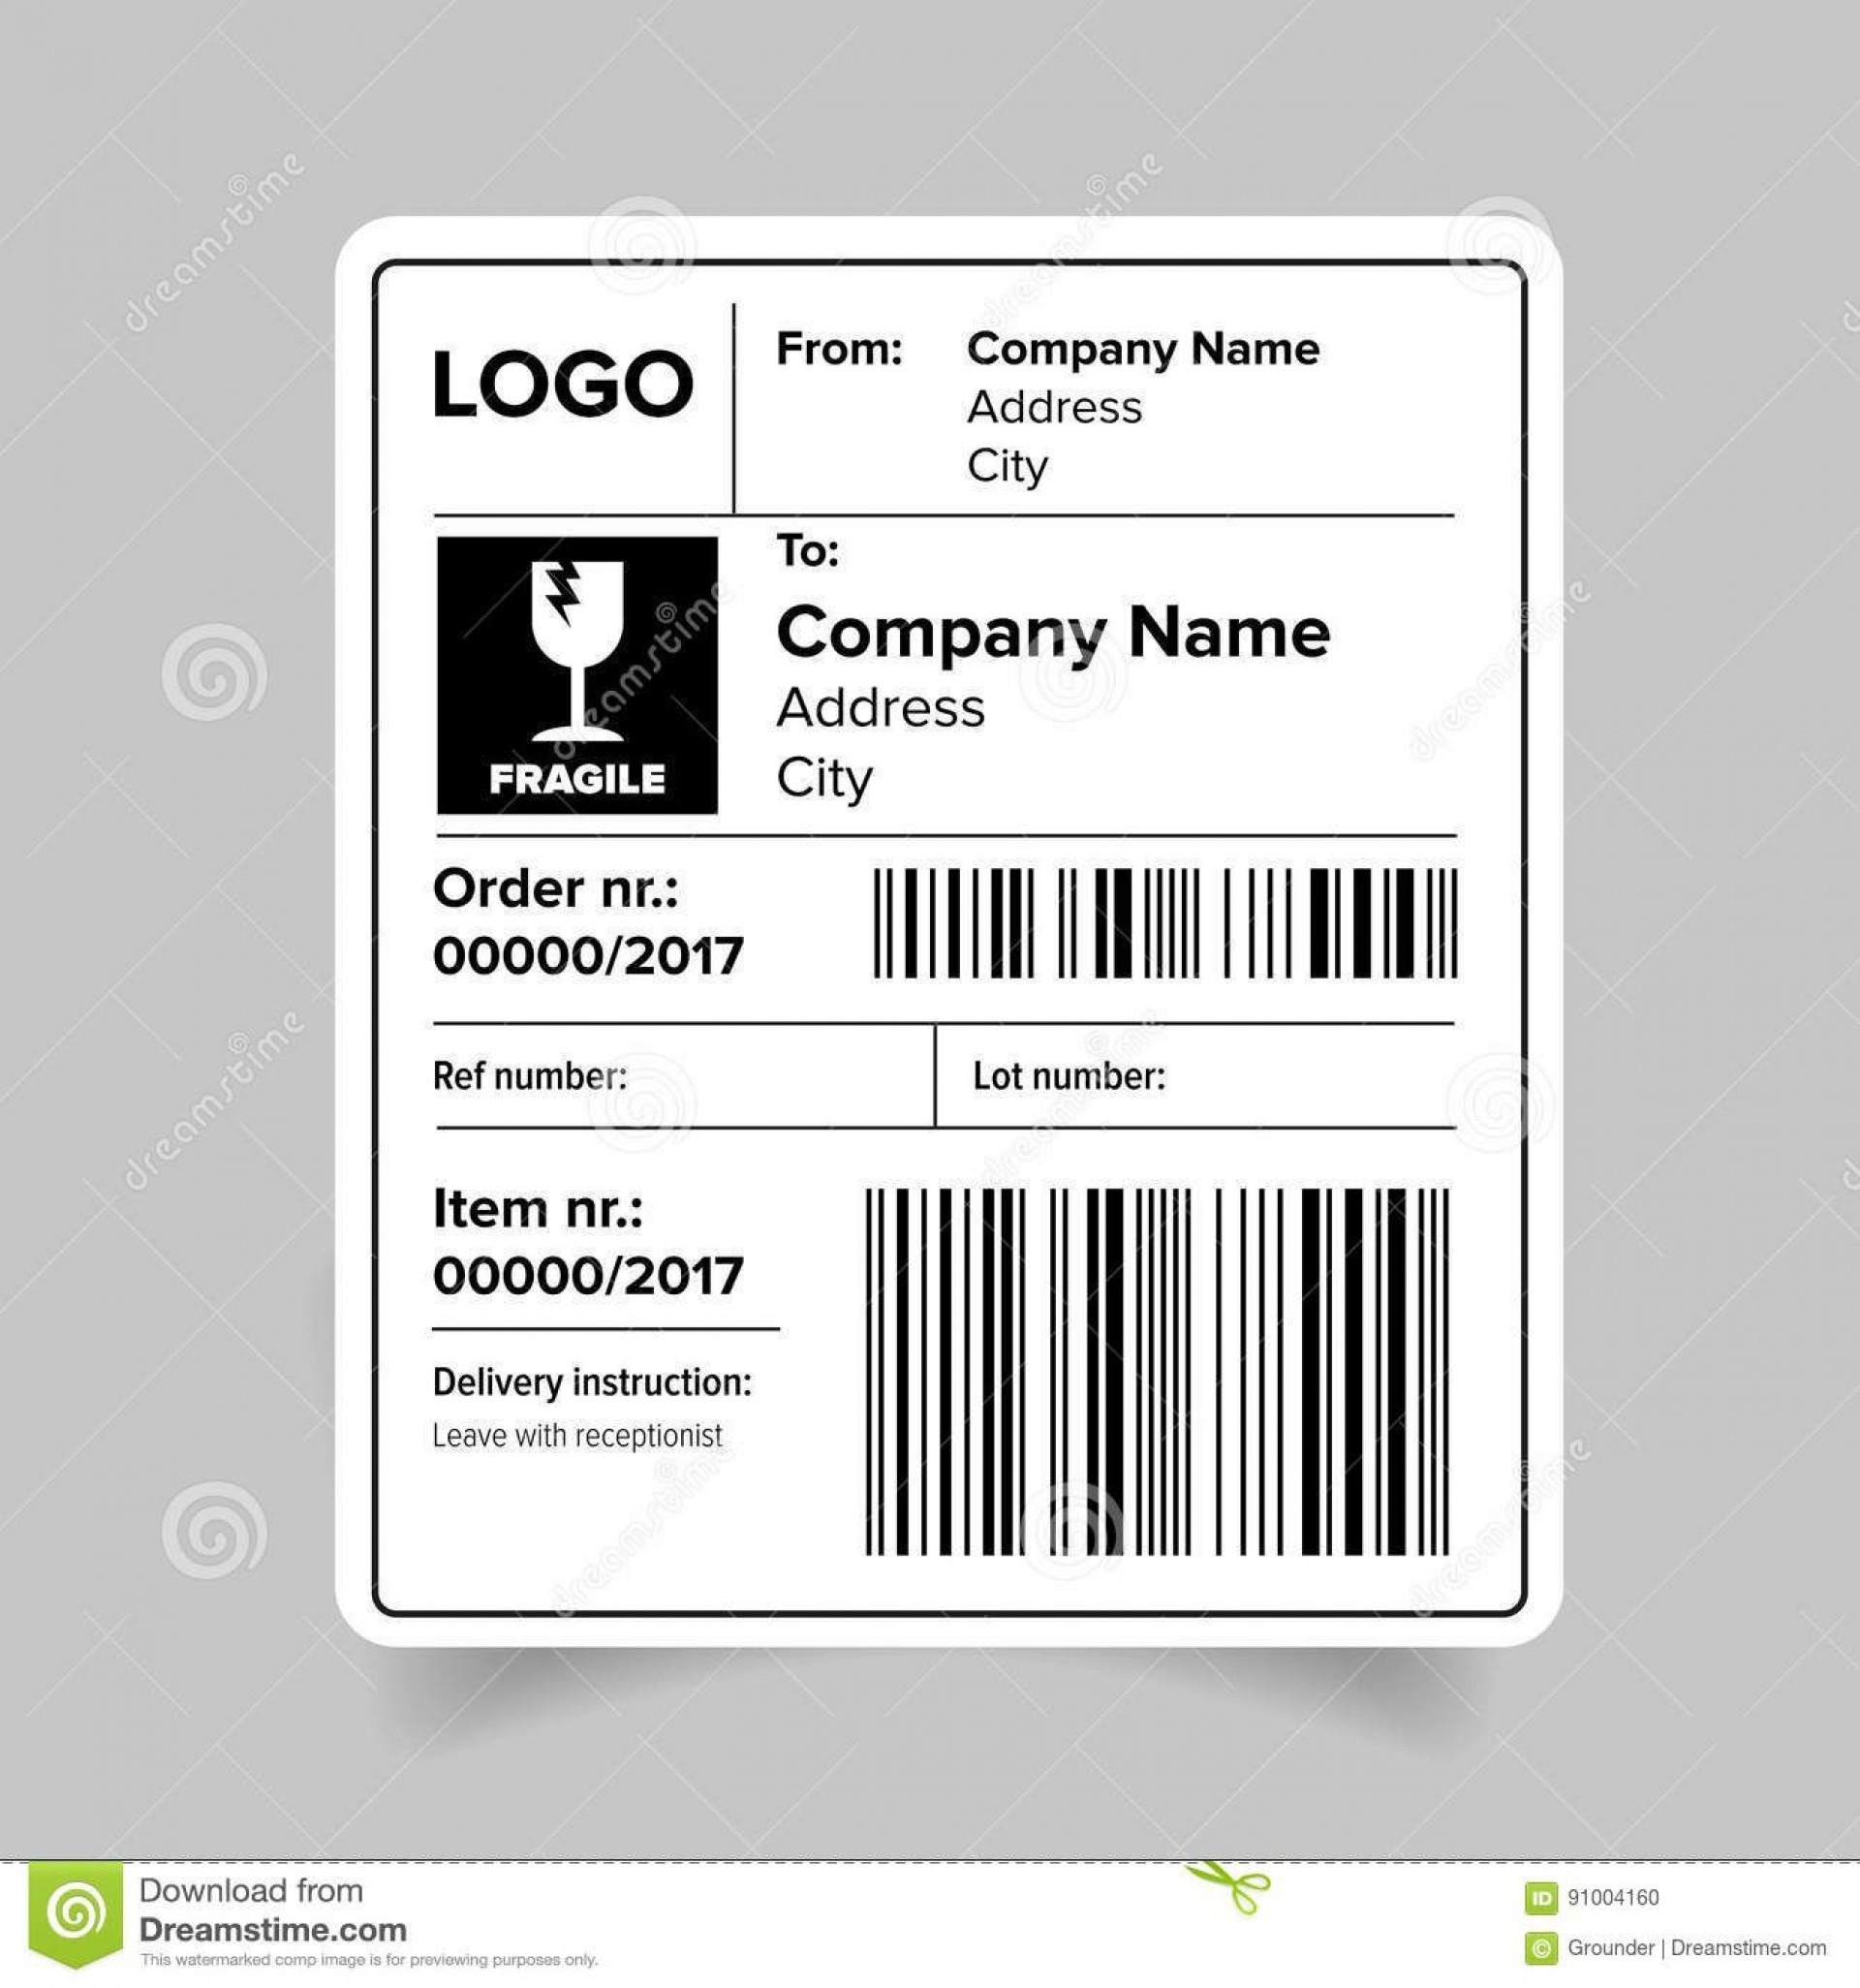 008 Dreaded Free Online Shipping Label Template Highest Quality 1920